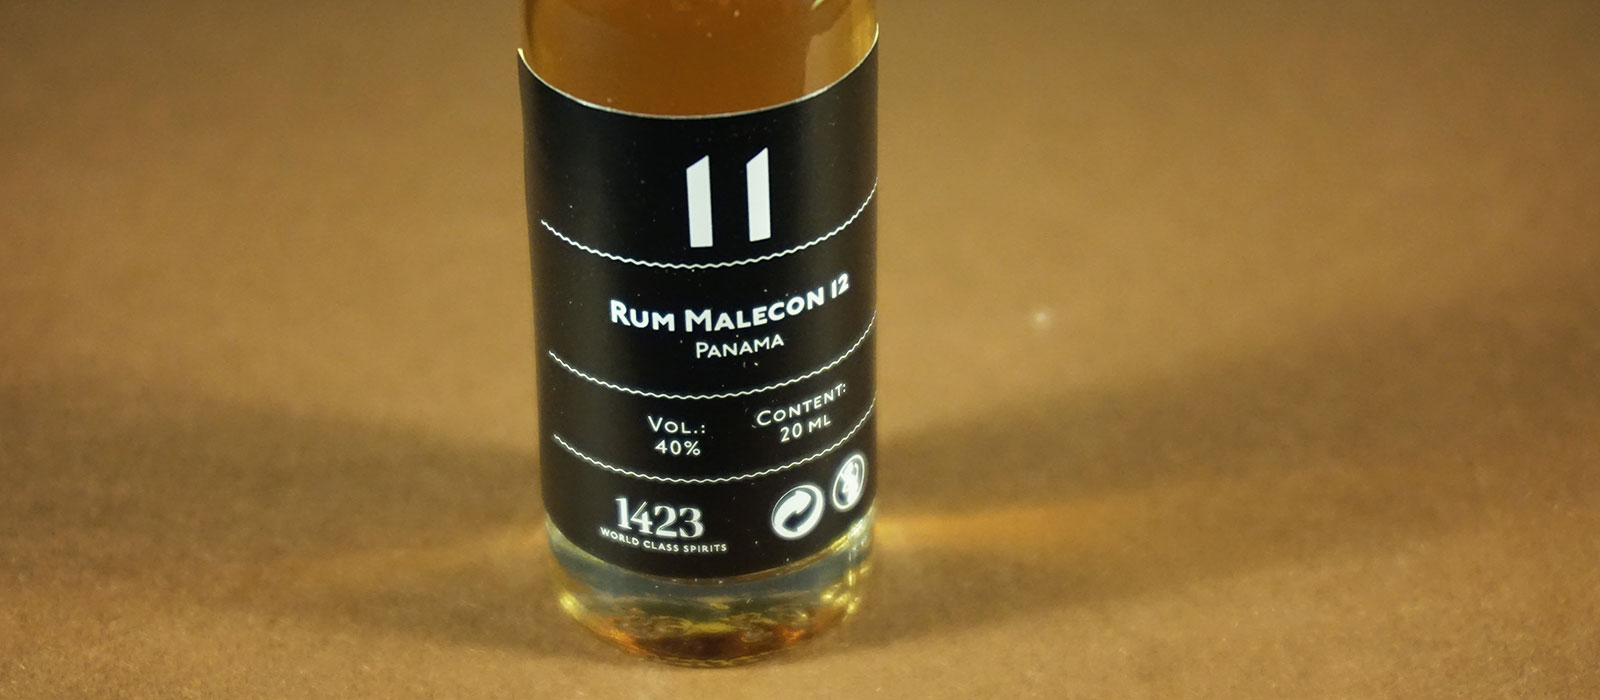 24 Days of Rum 2017: Dag 11 – Rum Malecon 12